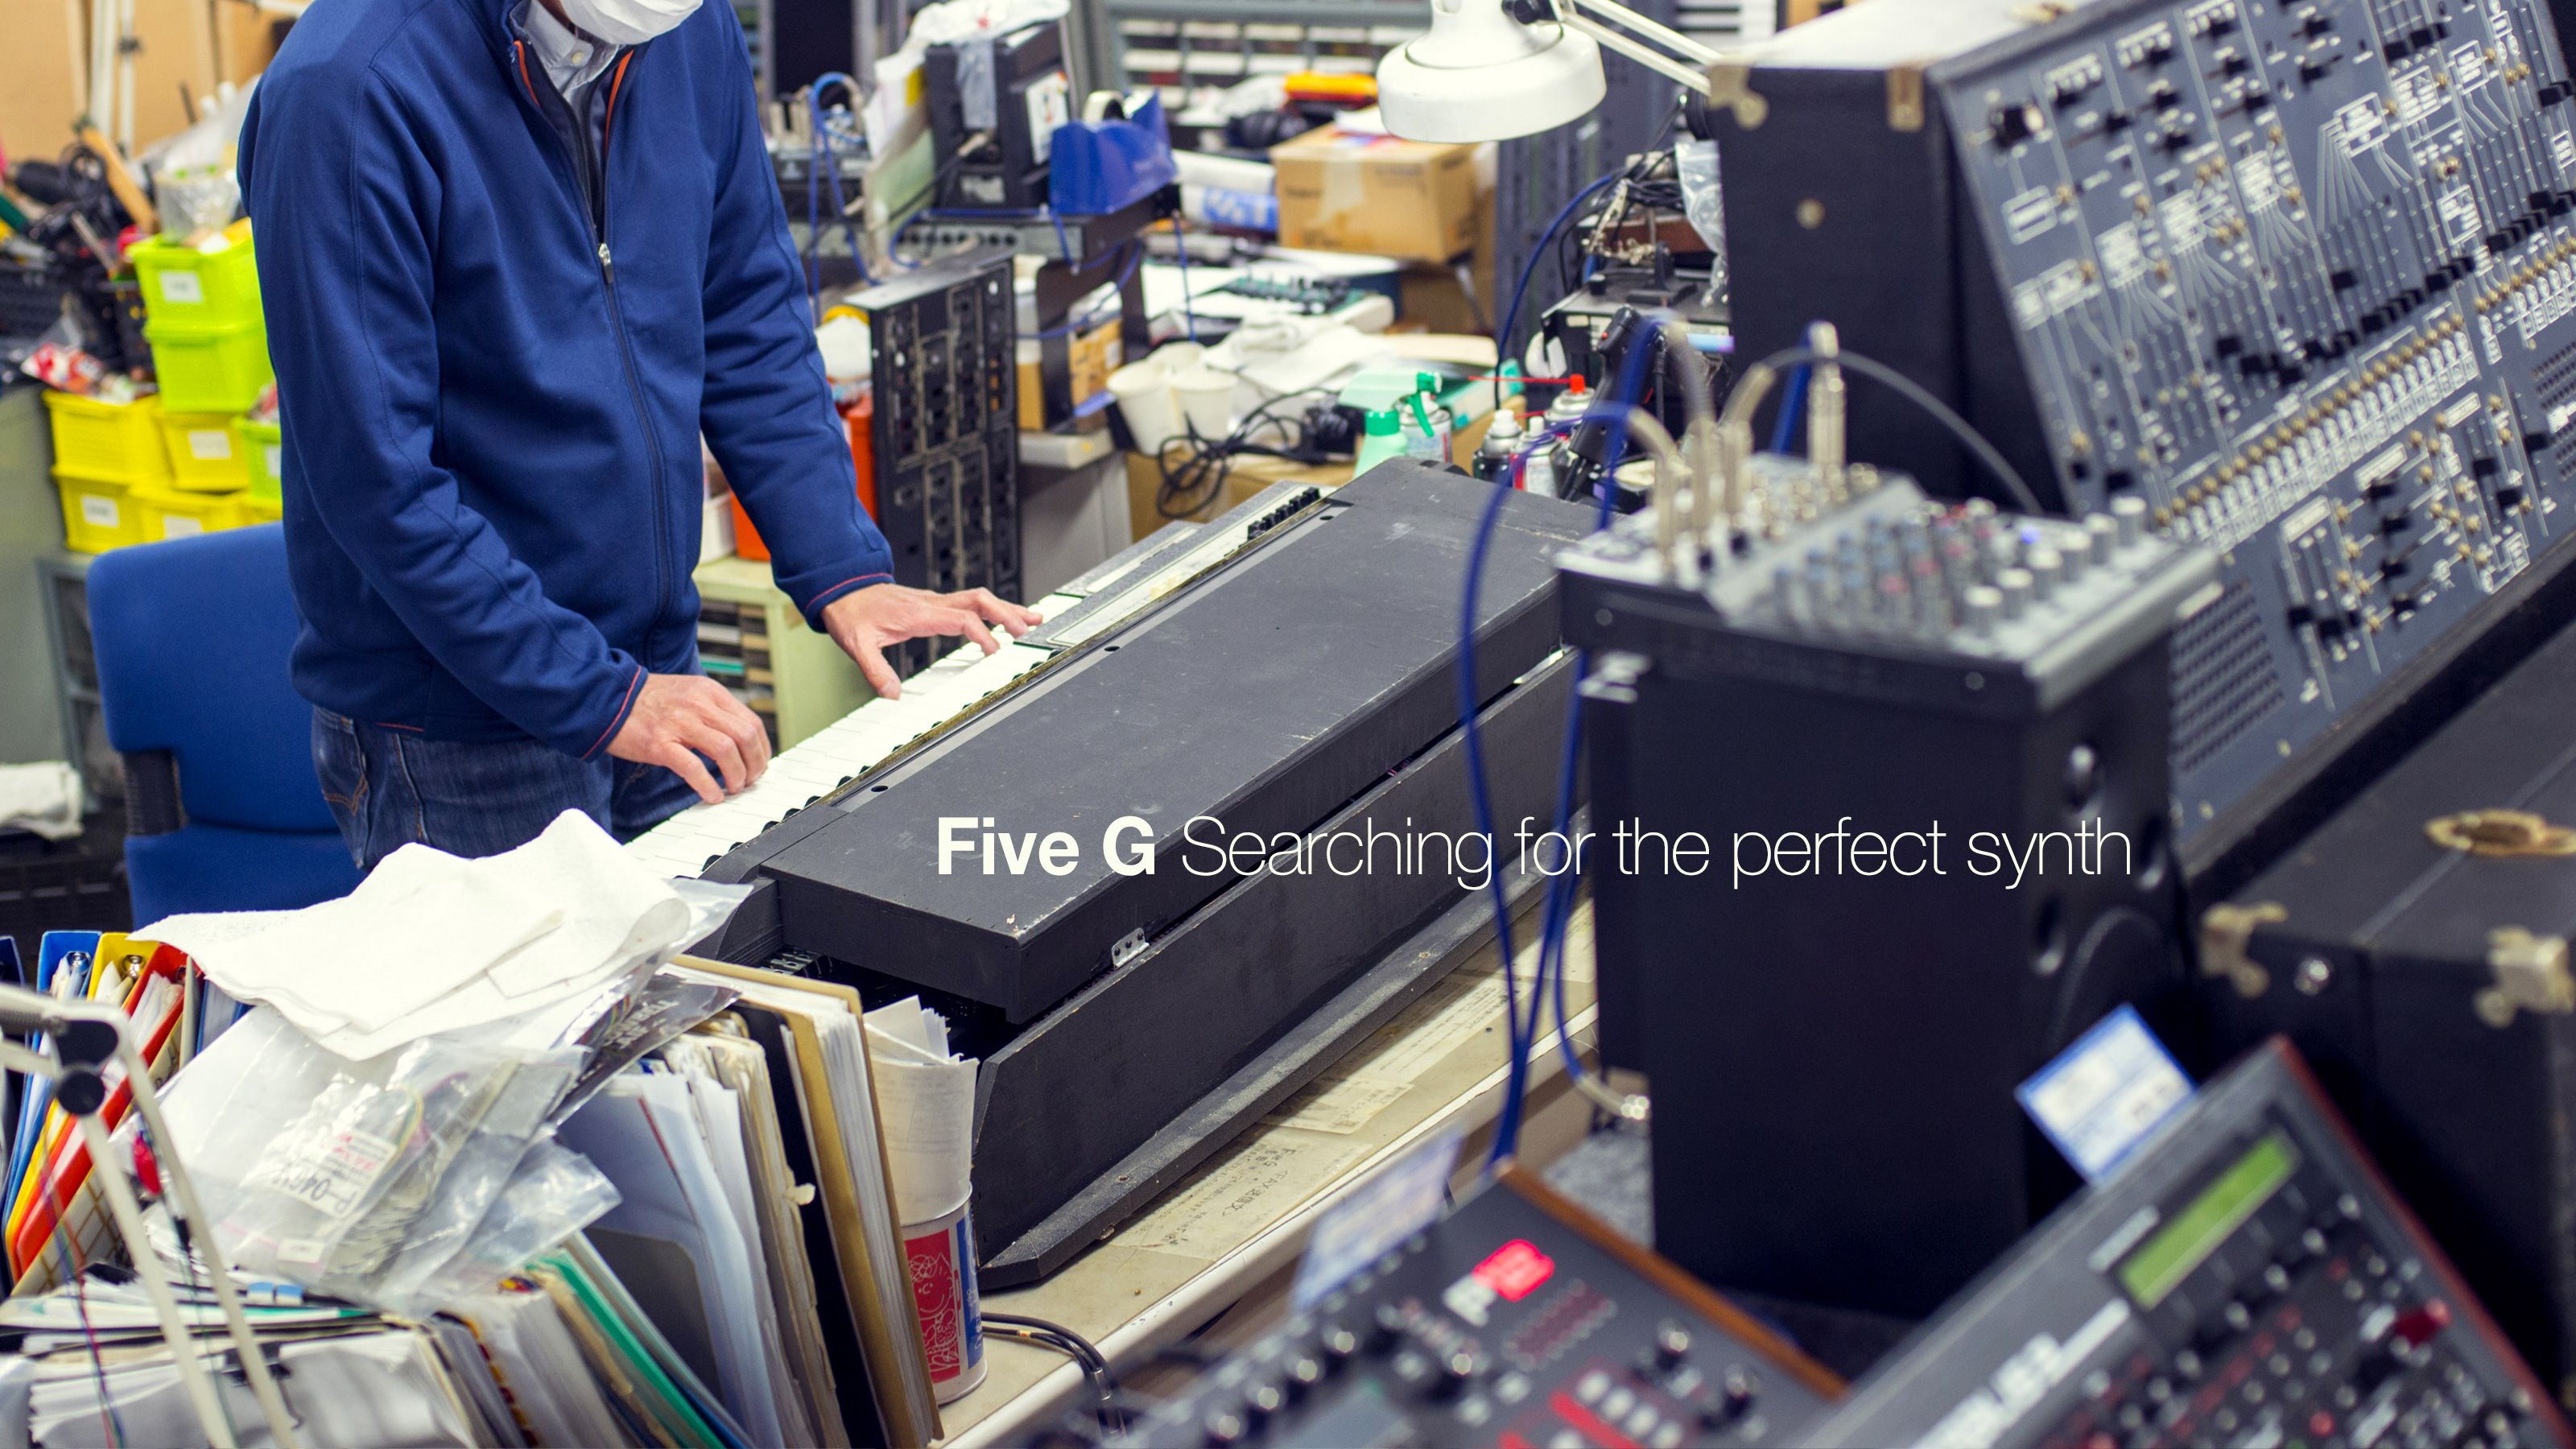 Five G: Searching for the perfect synth